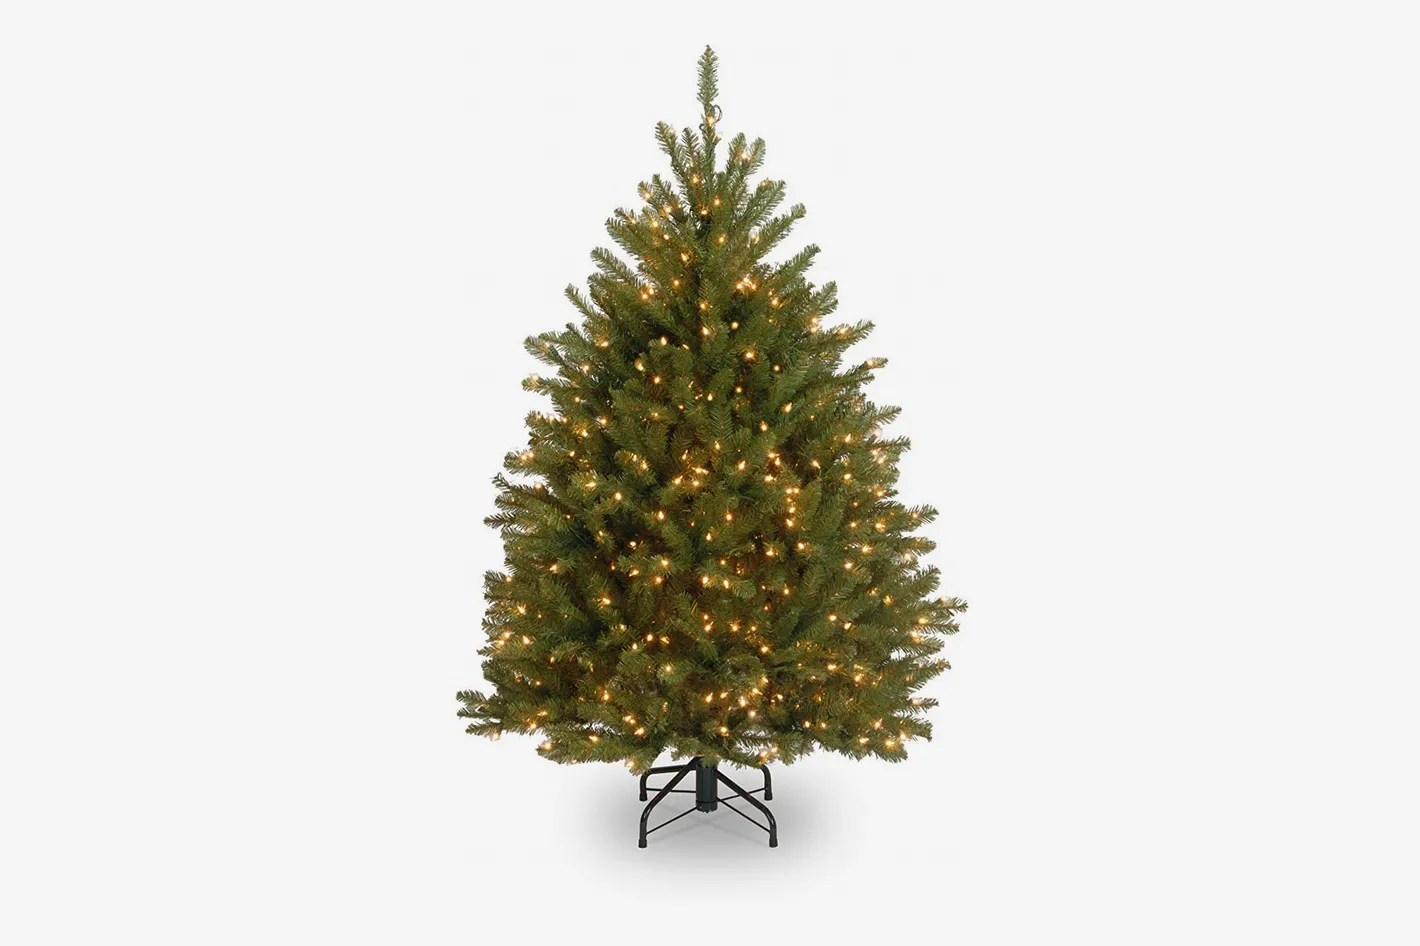 Christmas Tree Stand For Sale National Tree 4 1 2 Foot Dunhill Fir Tree With 450 Clear Lights